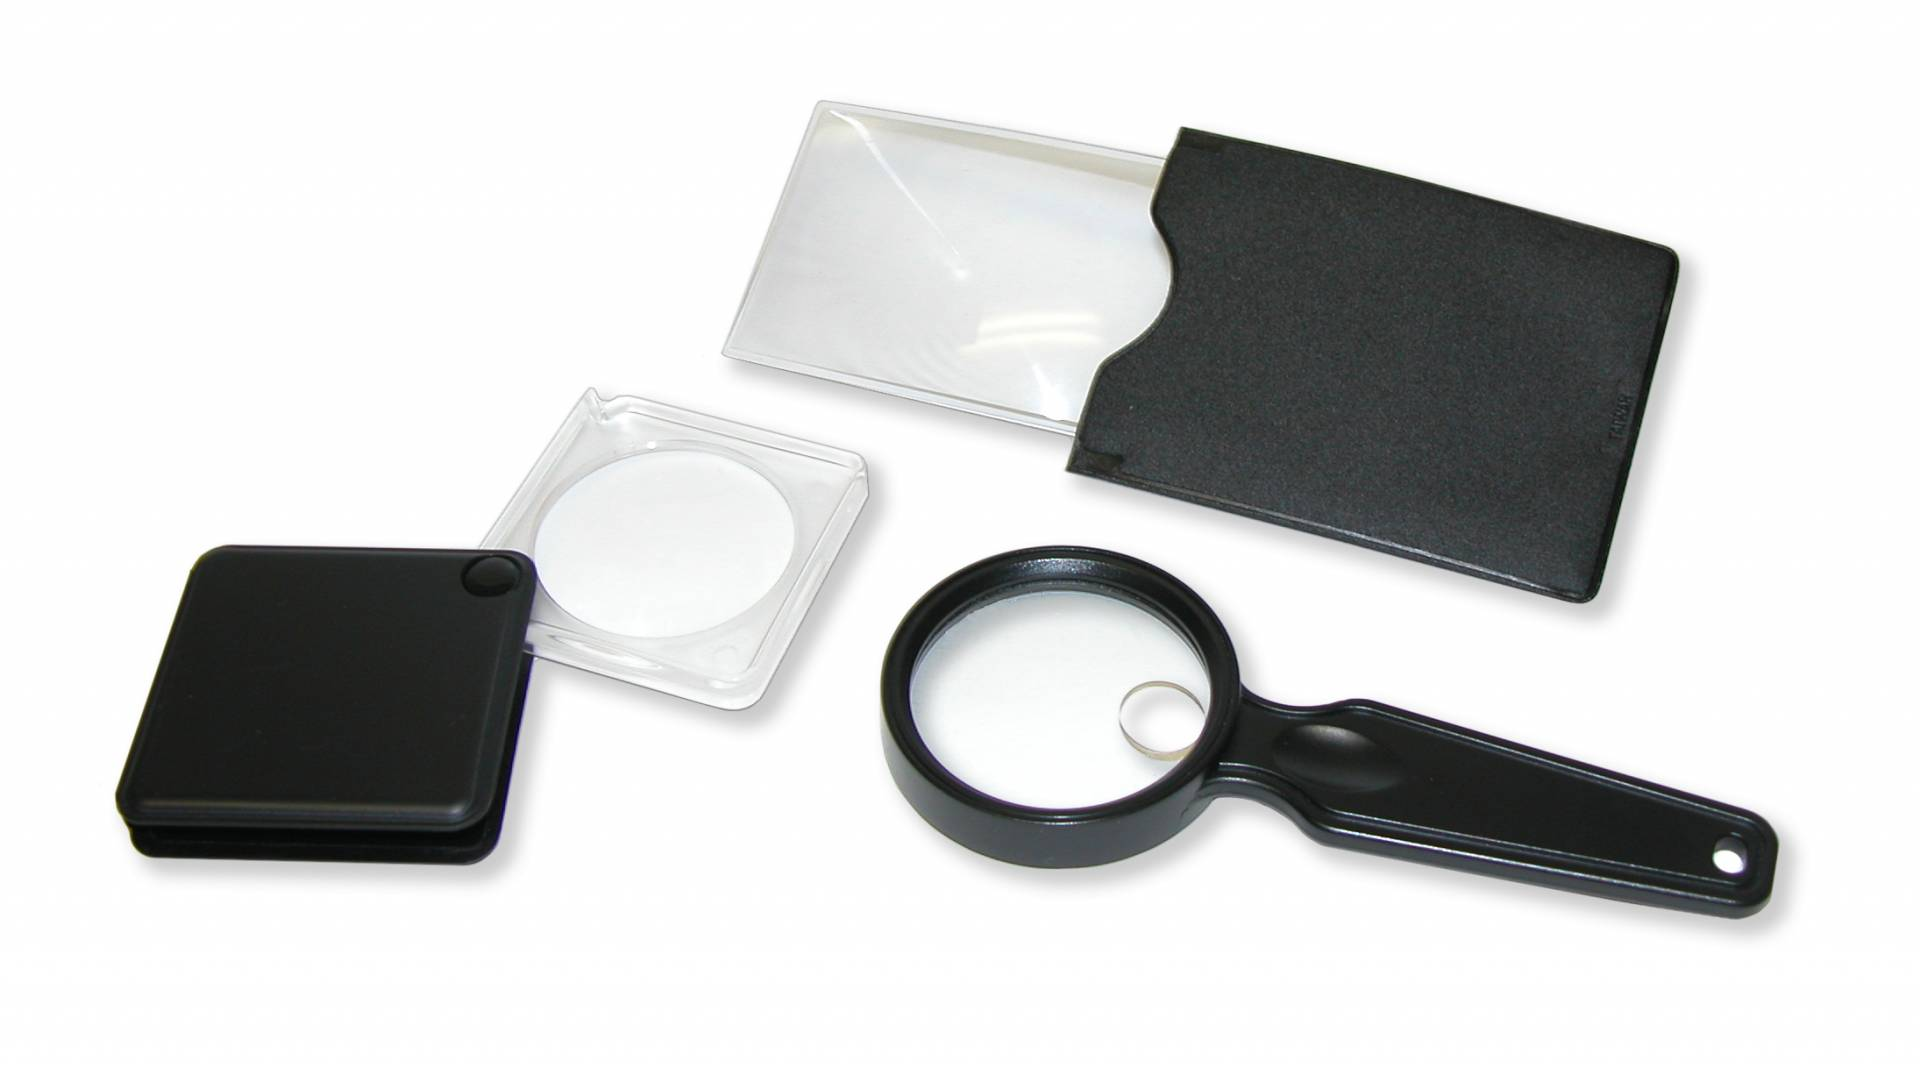 VP-01 ValuePak offers an assortment of three compact magnifiers